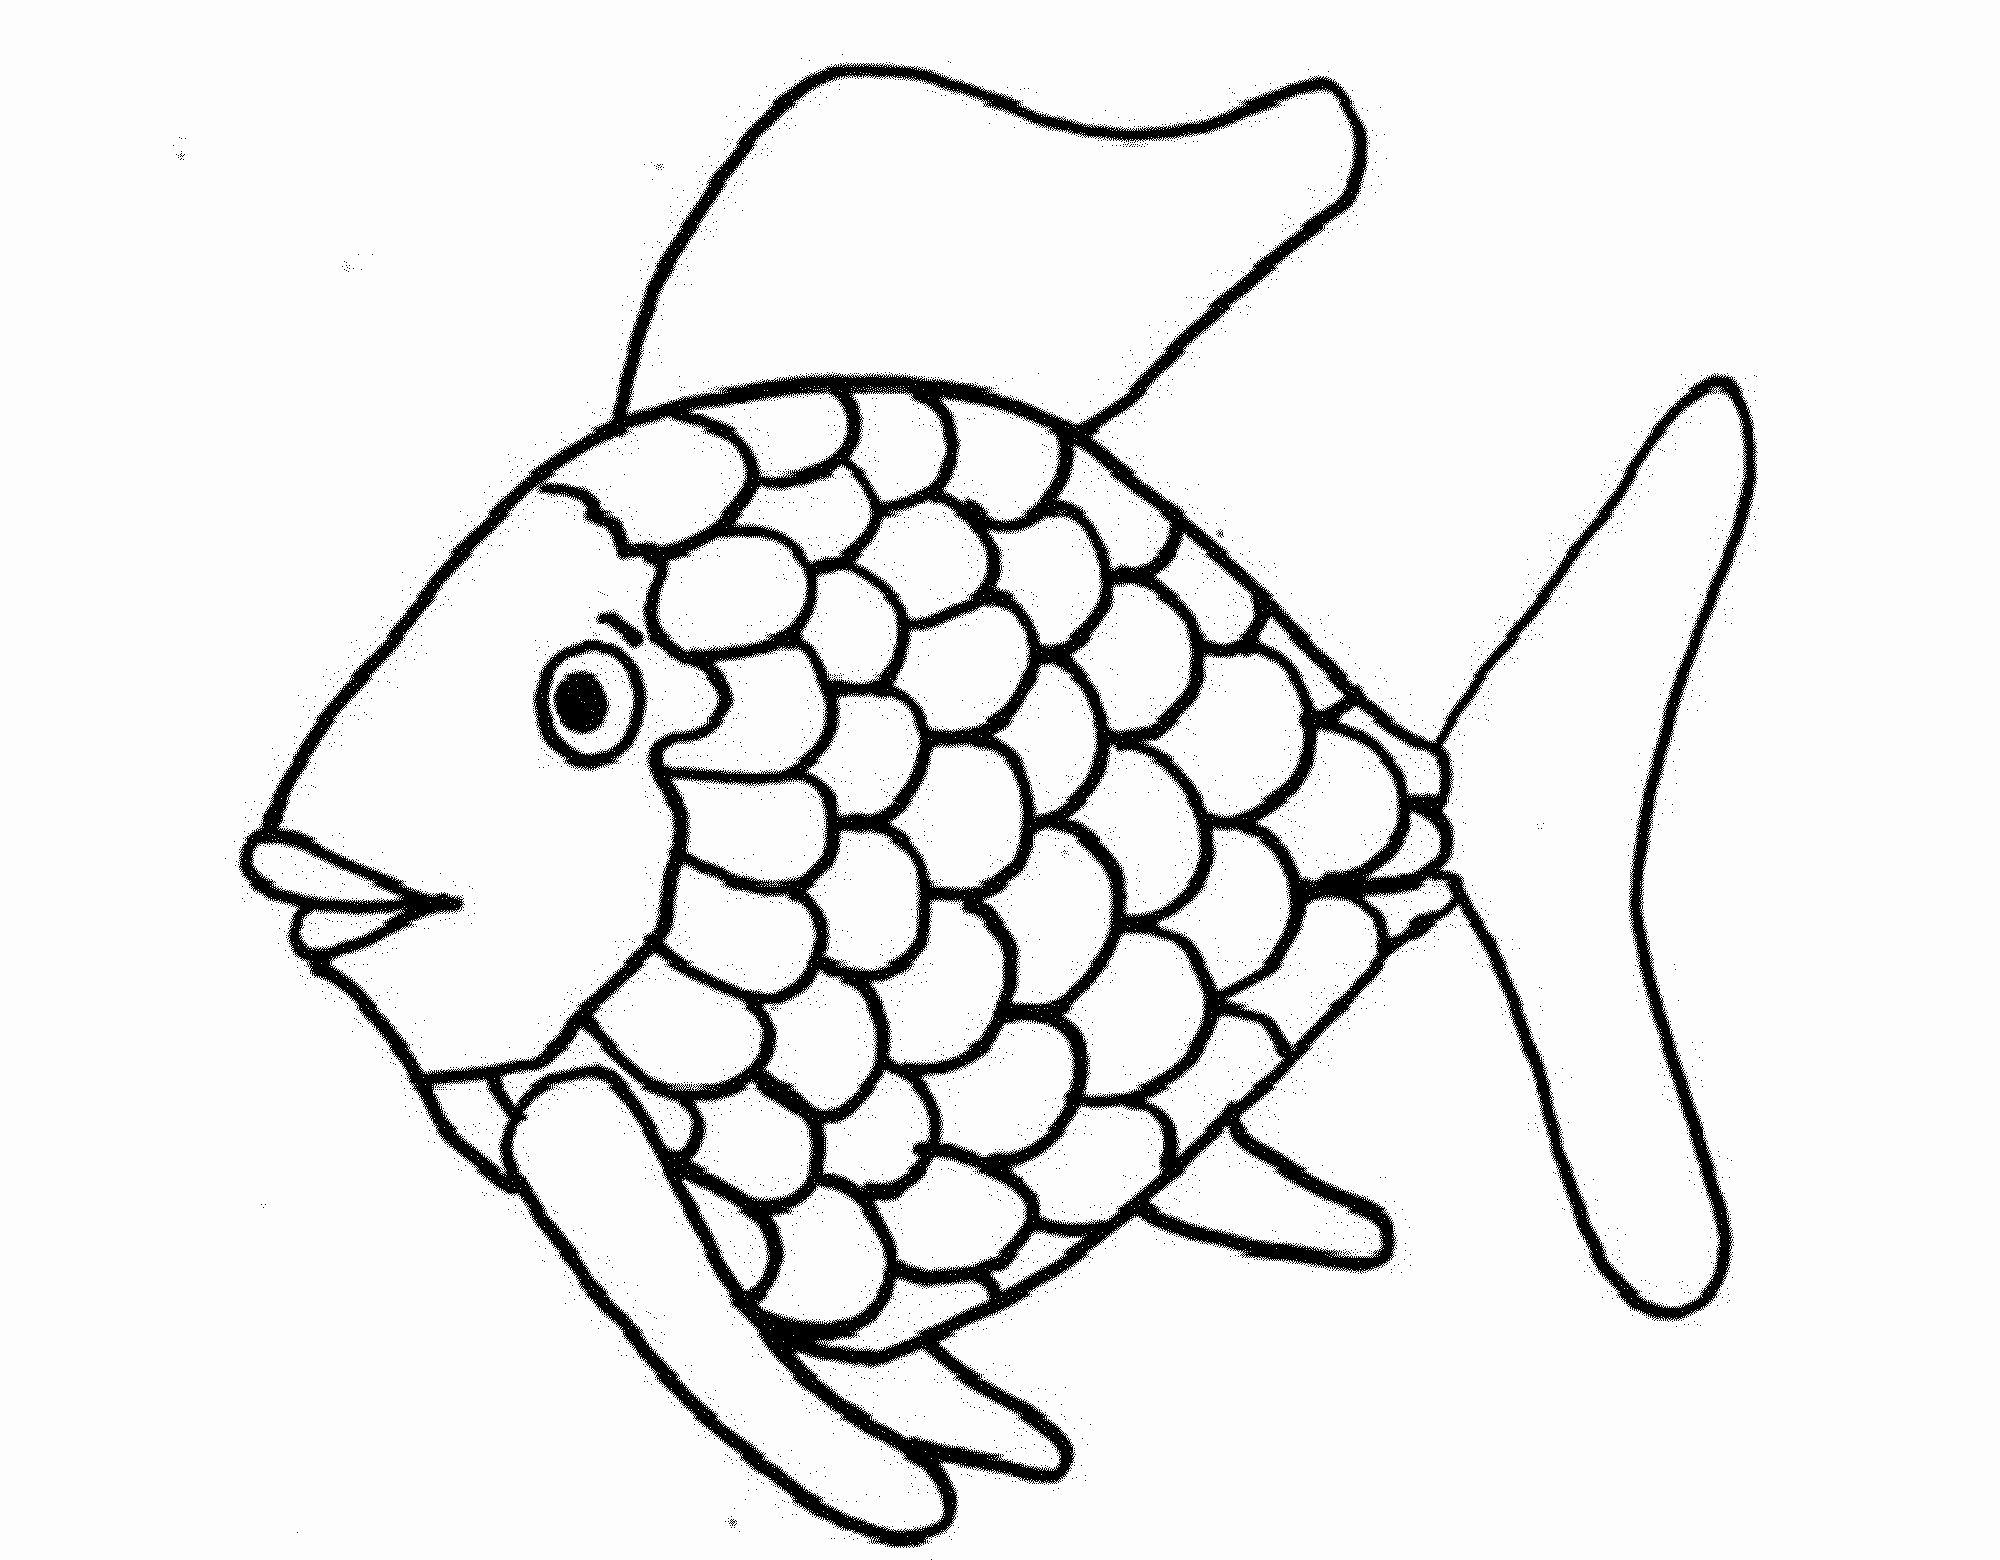 21 Fish Coloring Pages Printable Hellboyfull Org Fish Coloring Page Rainbow Fish Coloring Page Coloring Pages Inspirational